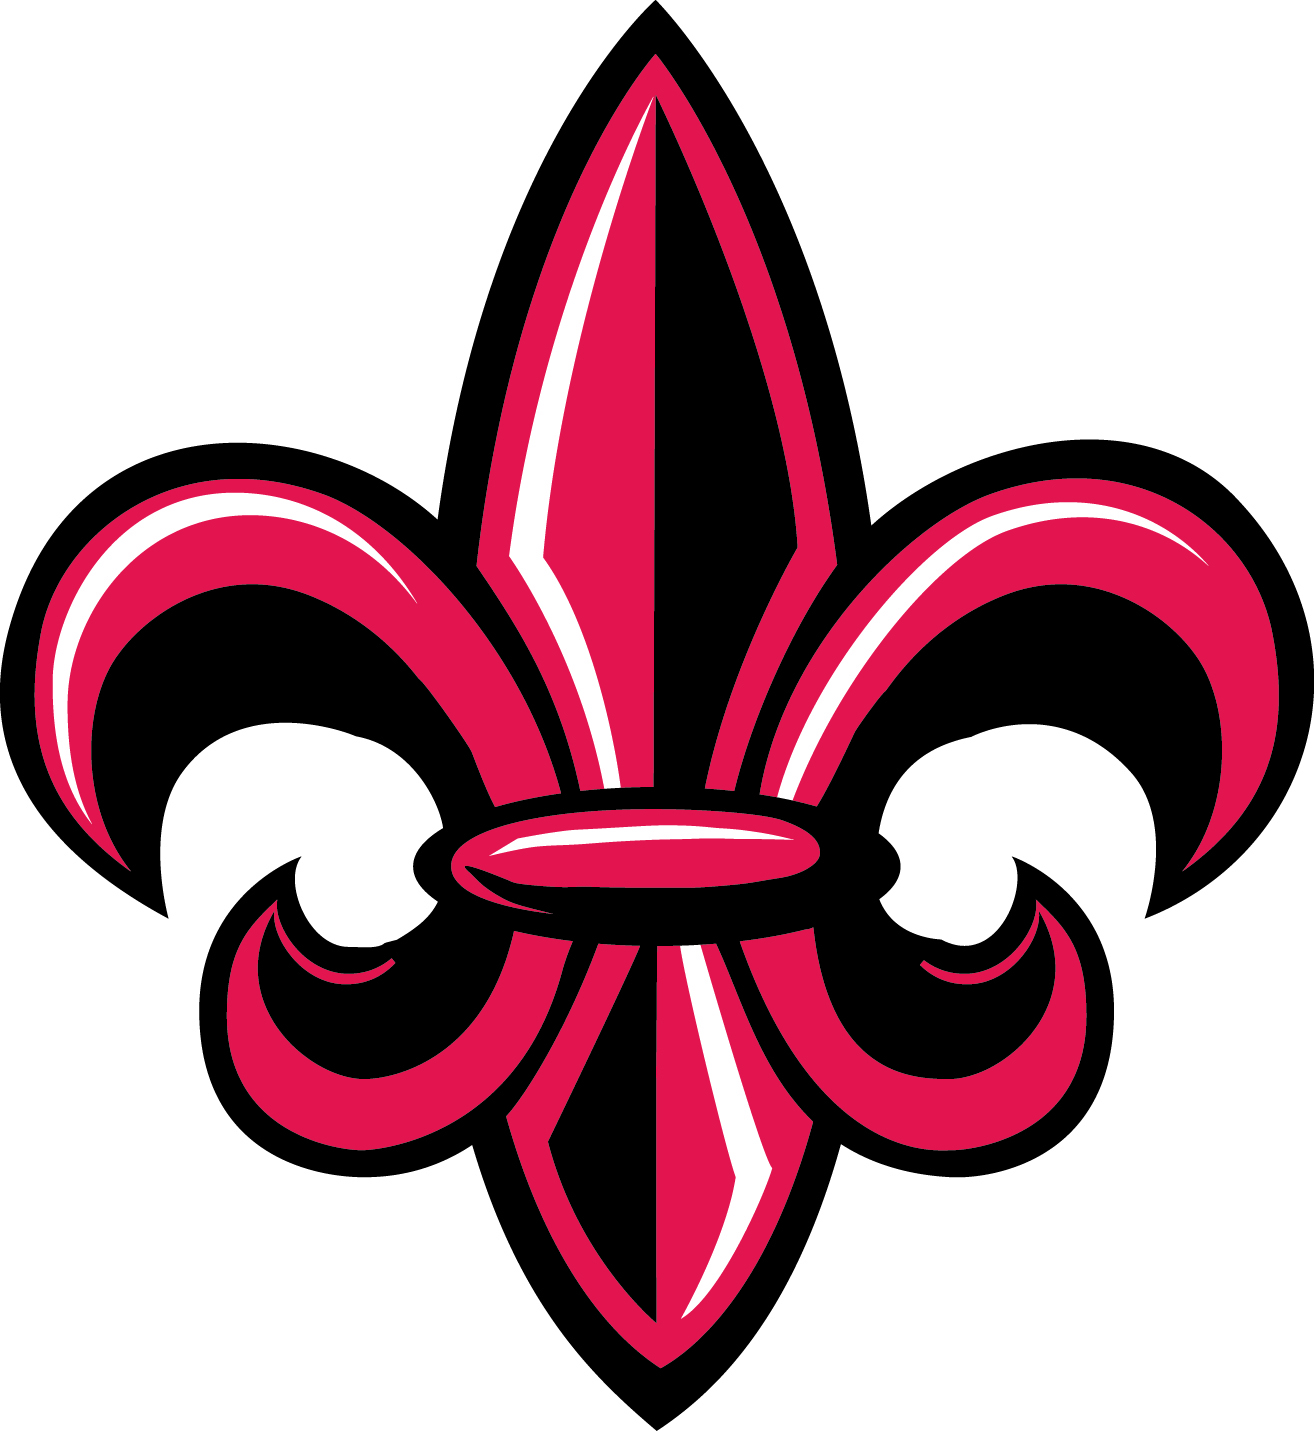 hight resolution of fleur de lis image clipart library